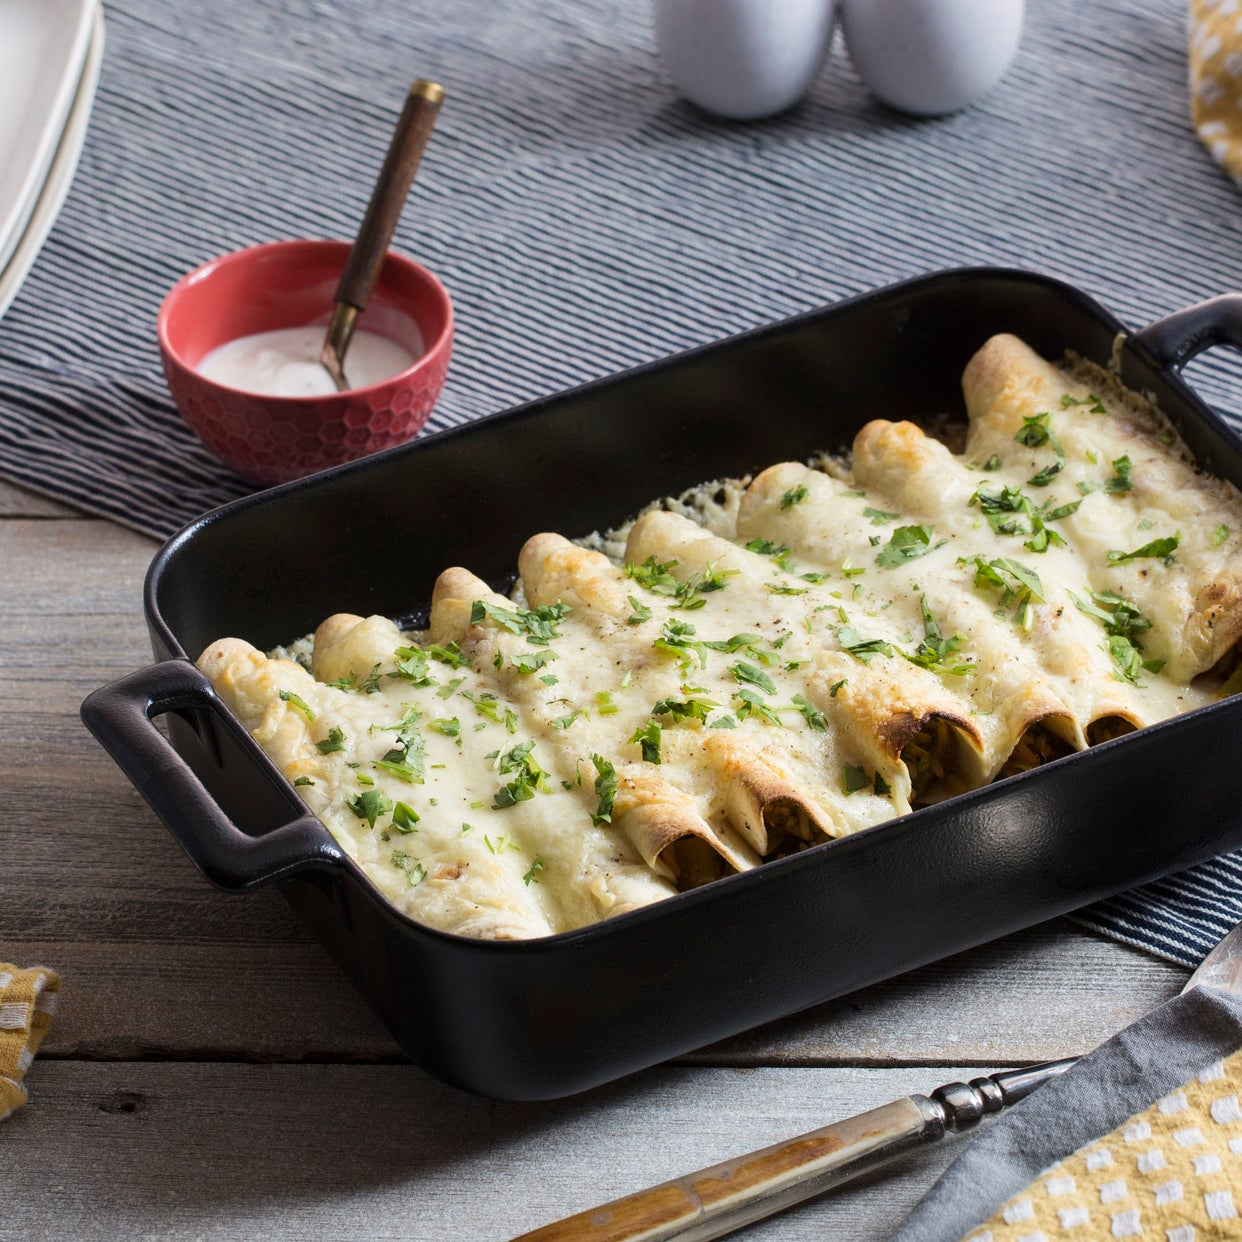 Broccoli & Cheese Enchiladas with Tomatillos & Sour Cream